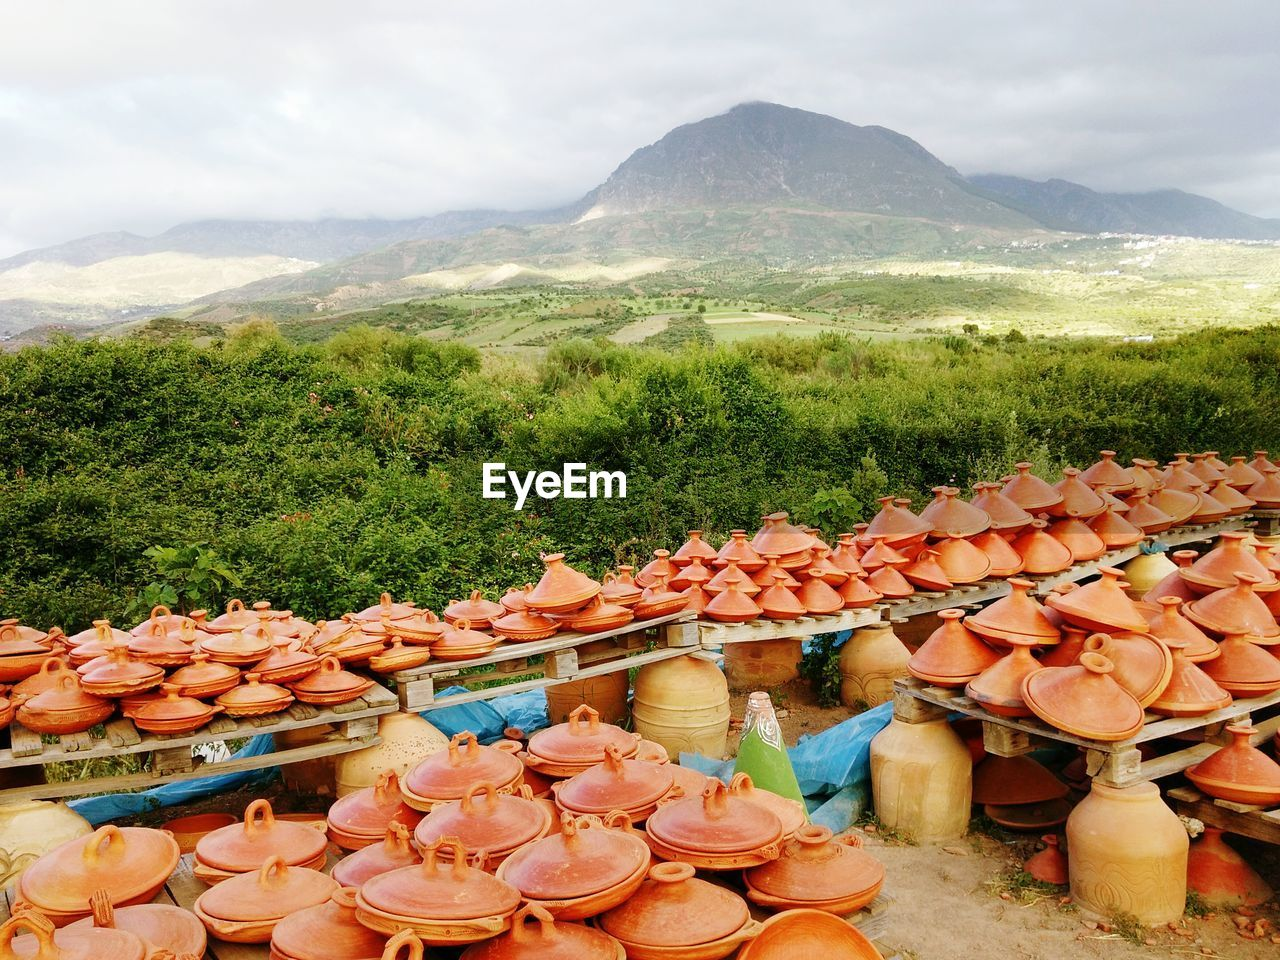 Traditional Pottery For Sale Against View Of Mountains